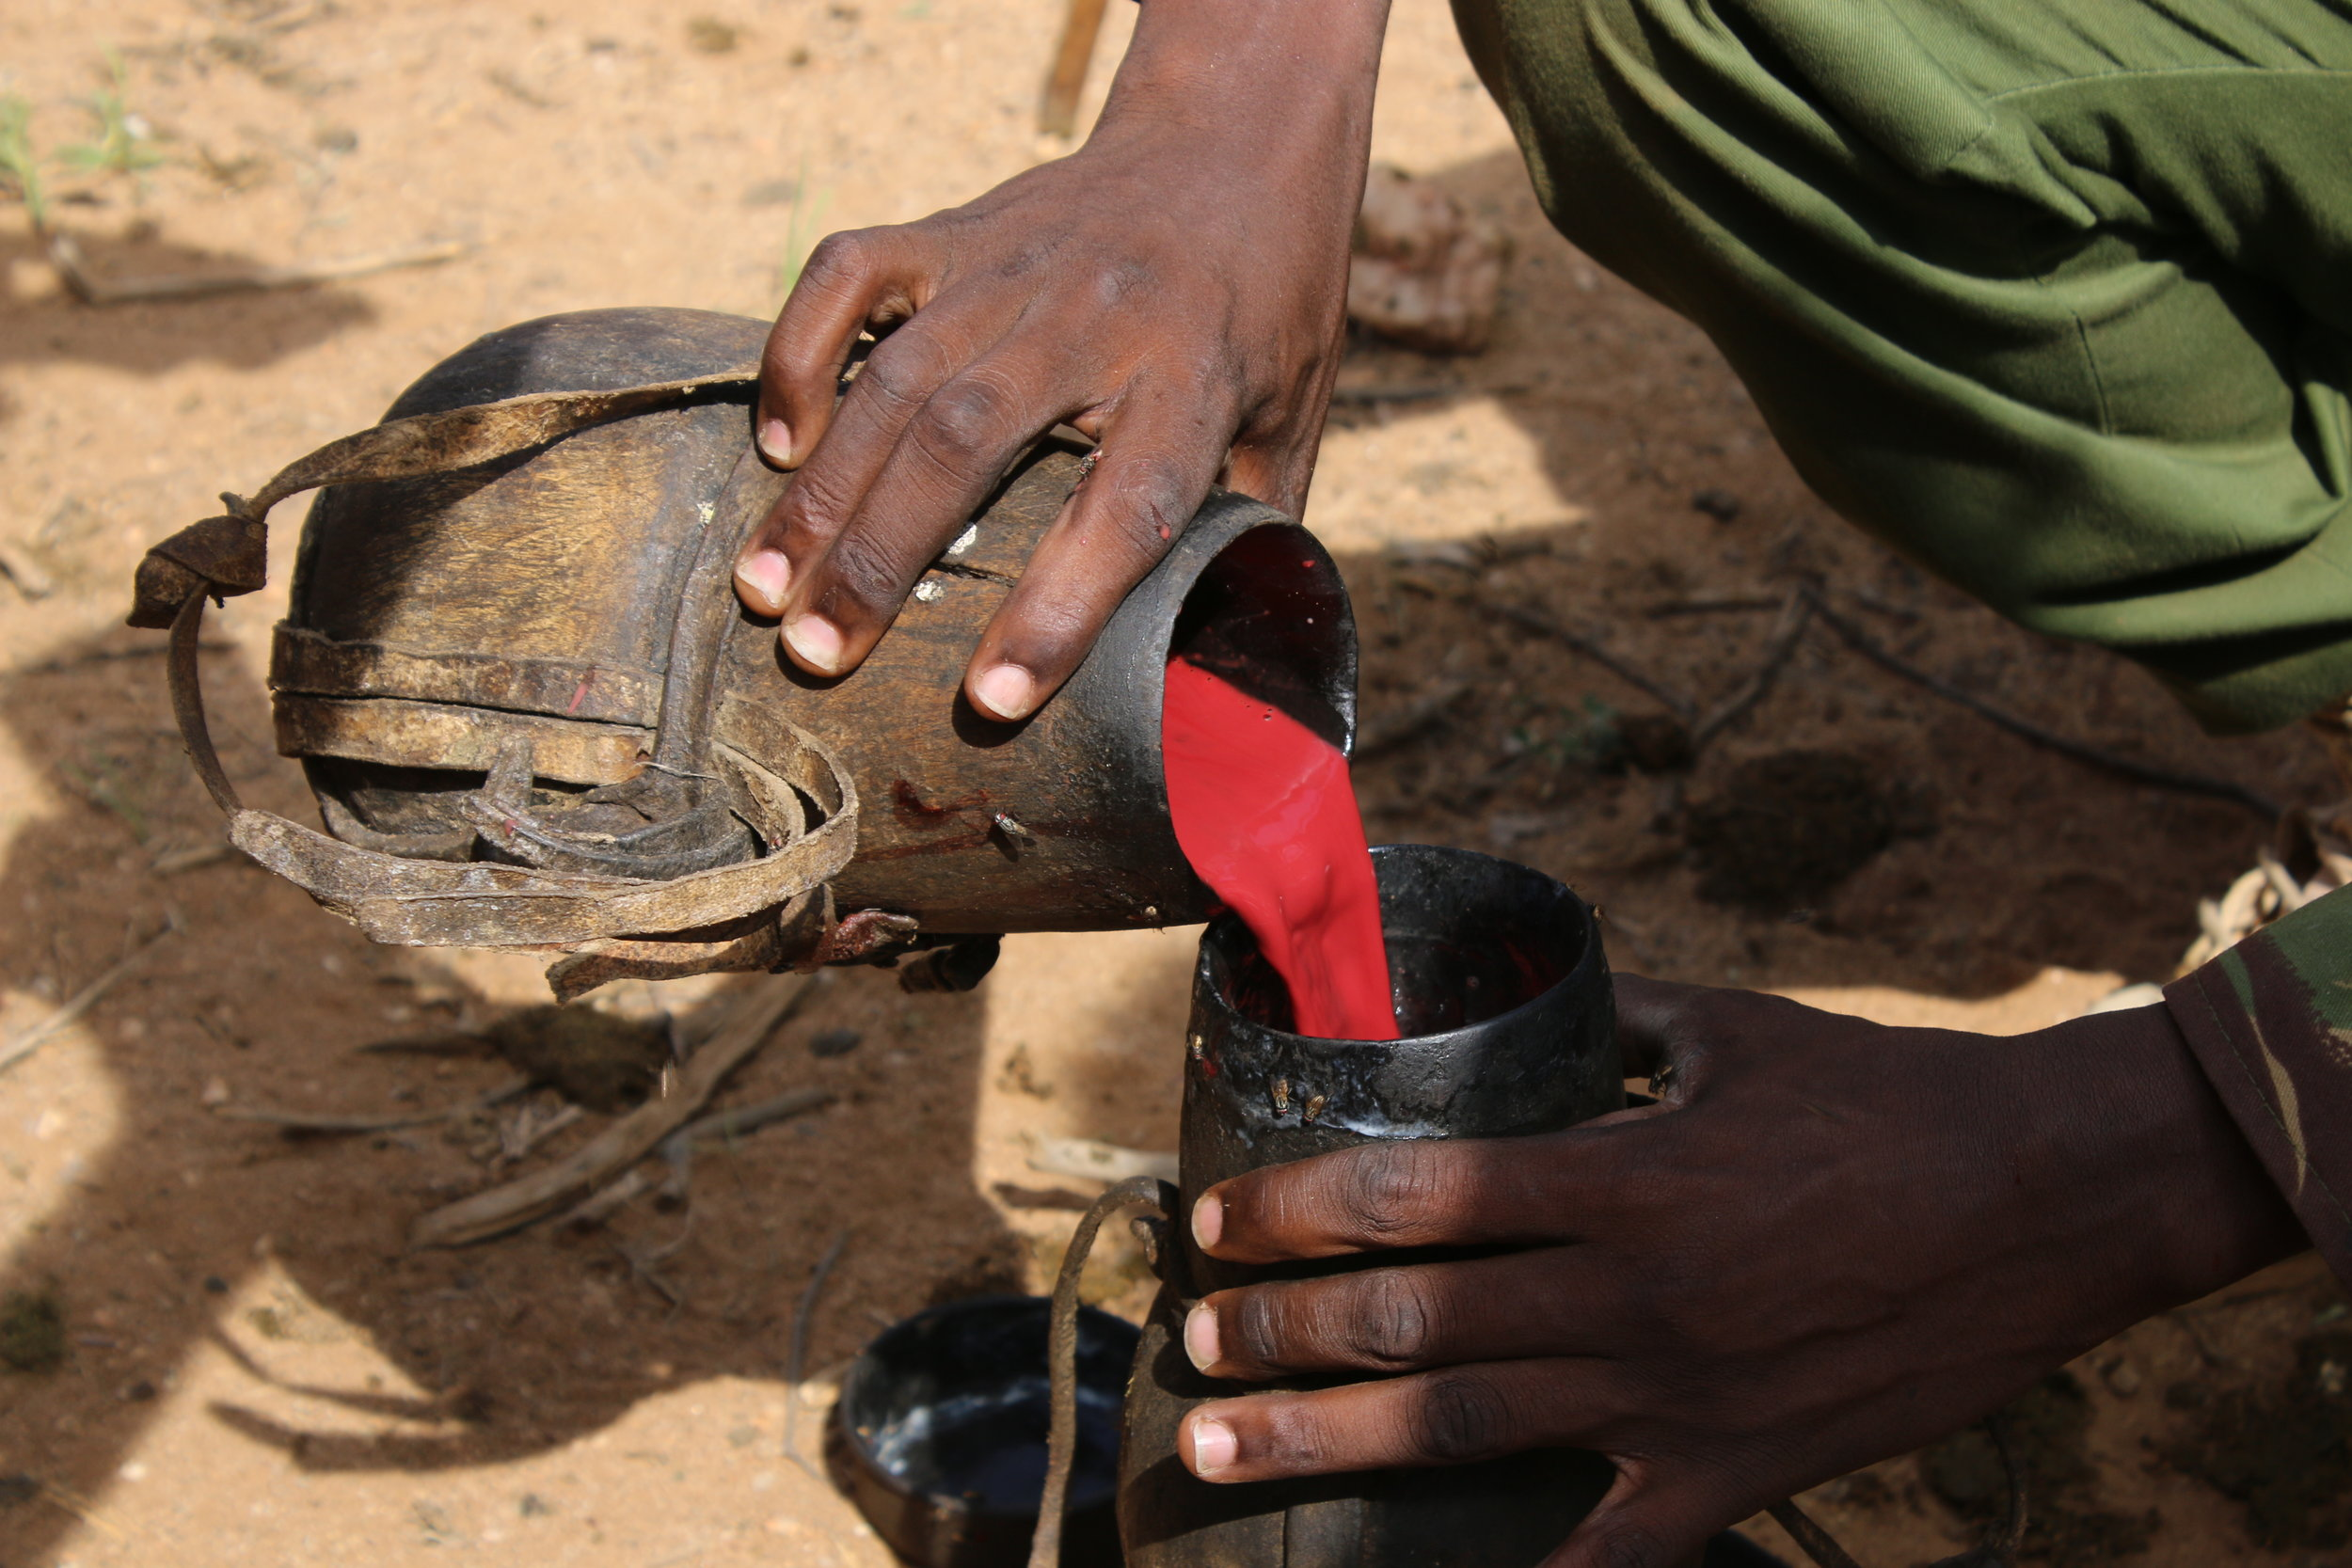 Stay tuned for the next blog from Africa . . . - Here's a hint to see what we drank with the Somburu!!